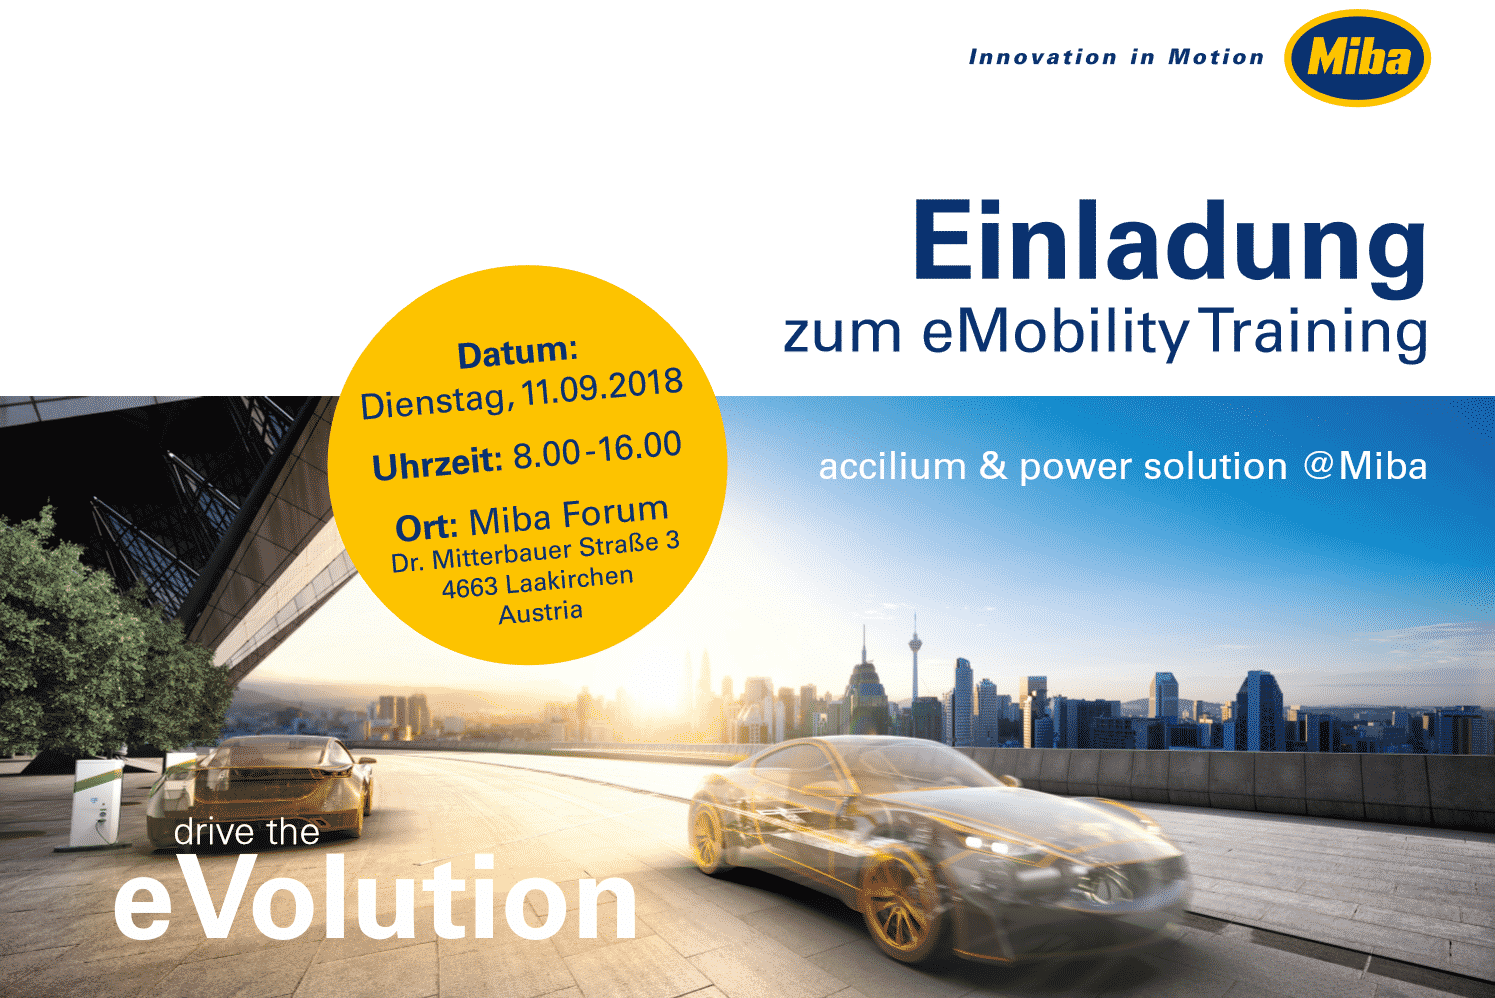 MIBA - eMobility Training » eMobility Training